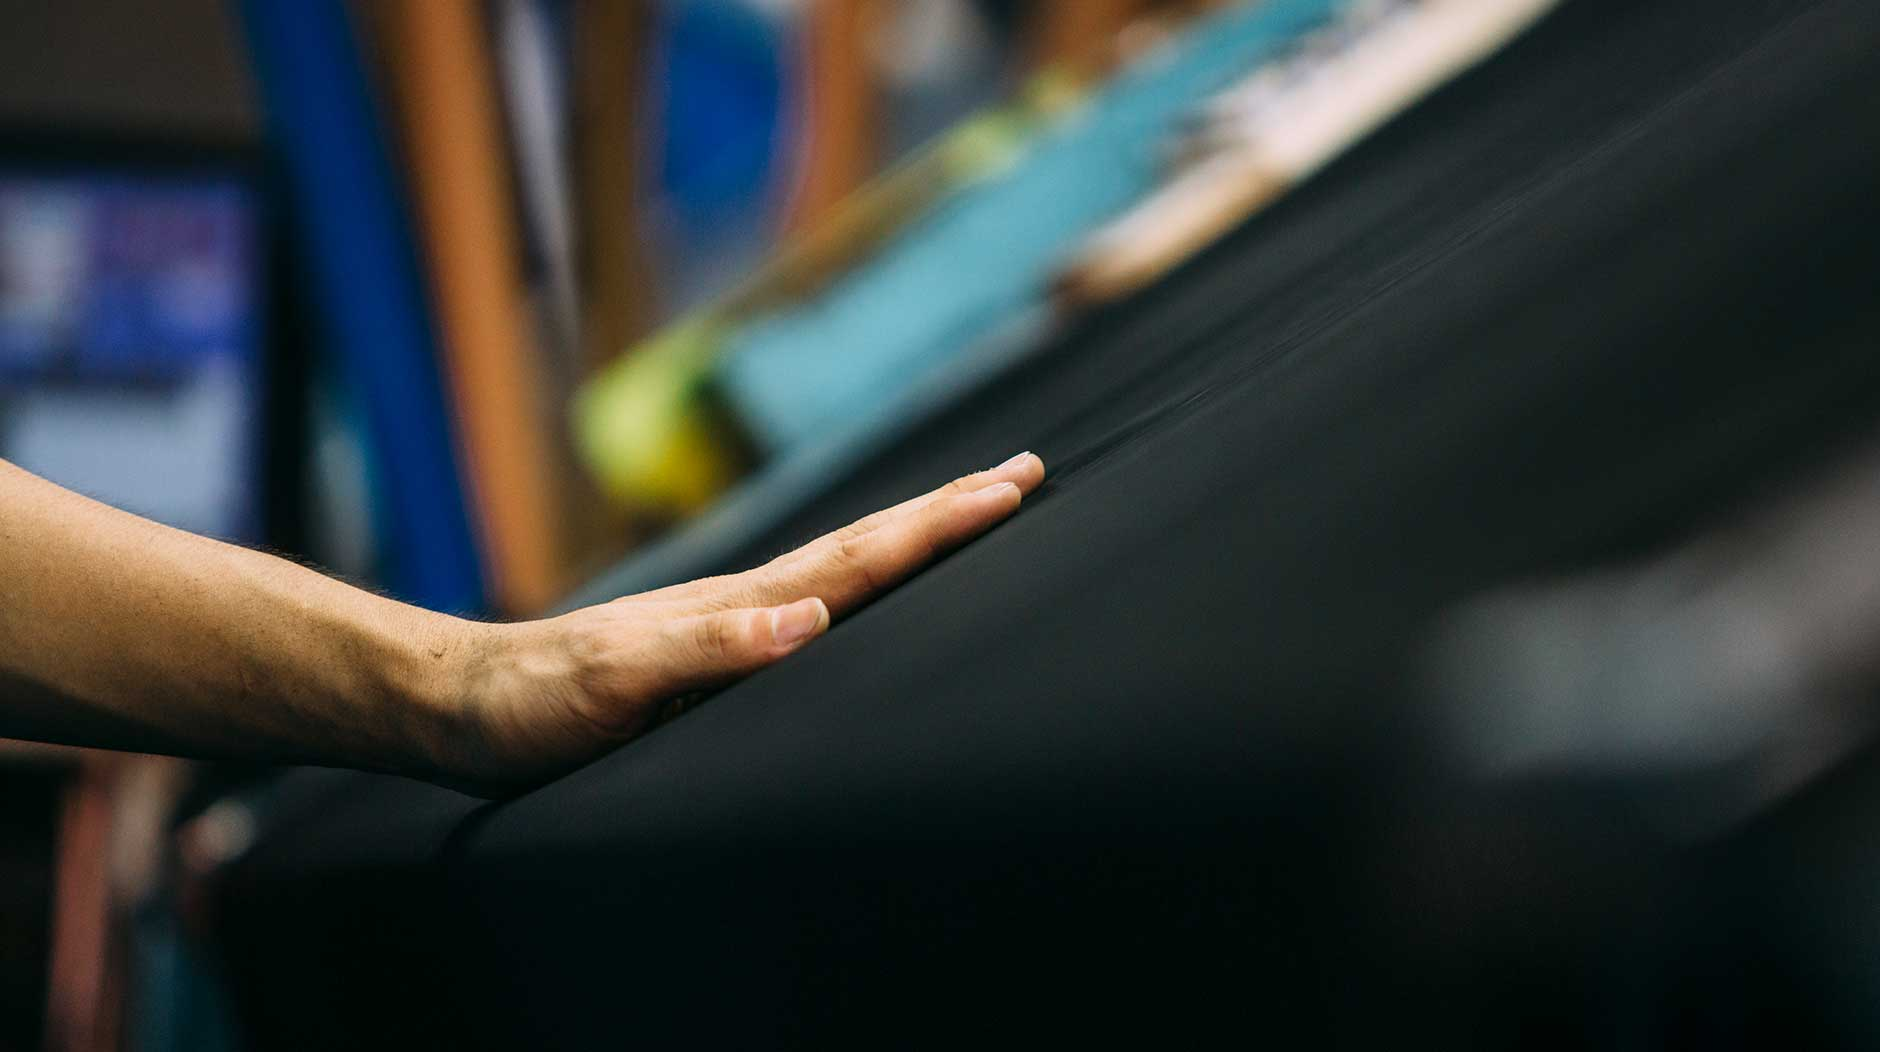 A person touching denim fabric